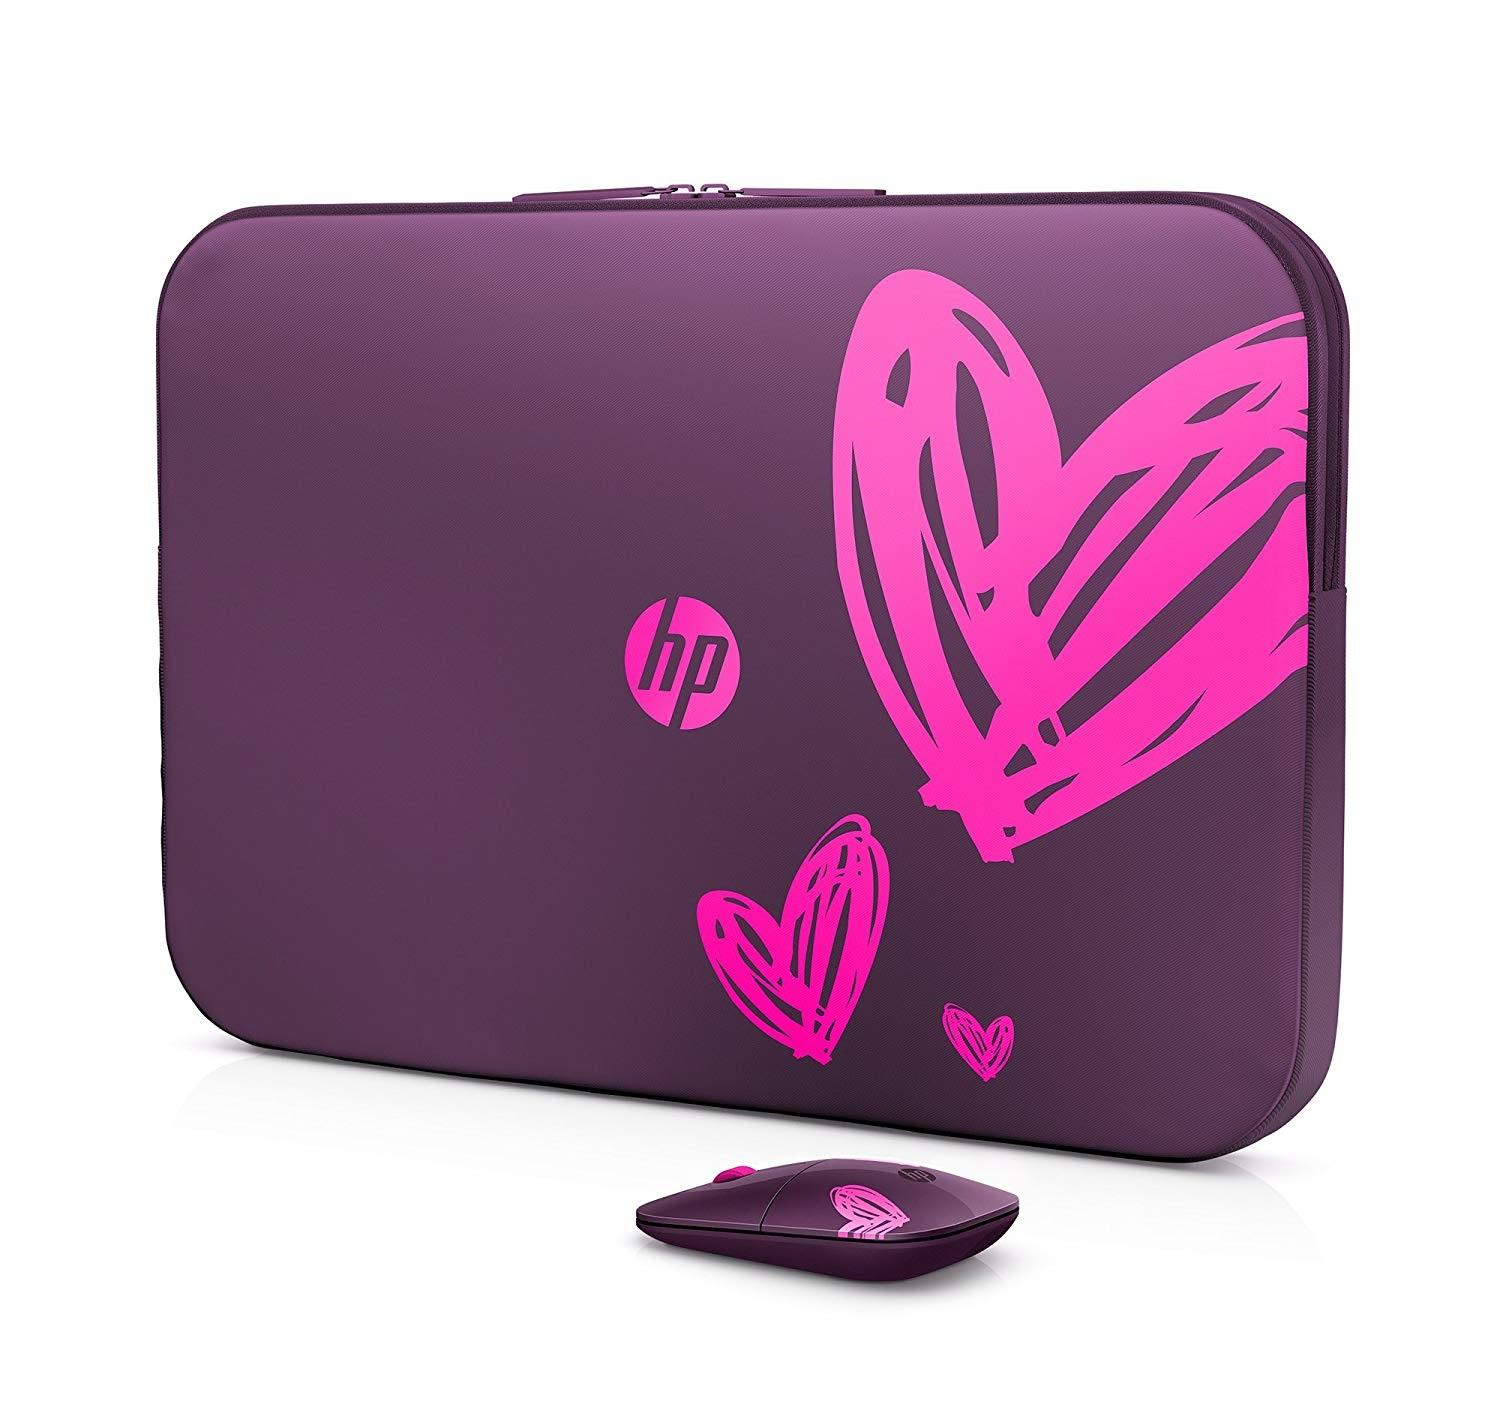 Spectrum Laptop Sleeve 15.6 Inches - Purple Pink Hearts - Special Edition -  Part   65185a591b